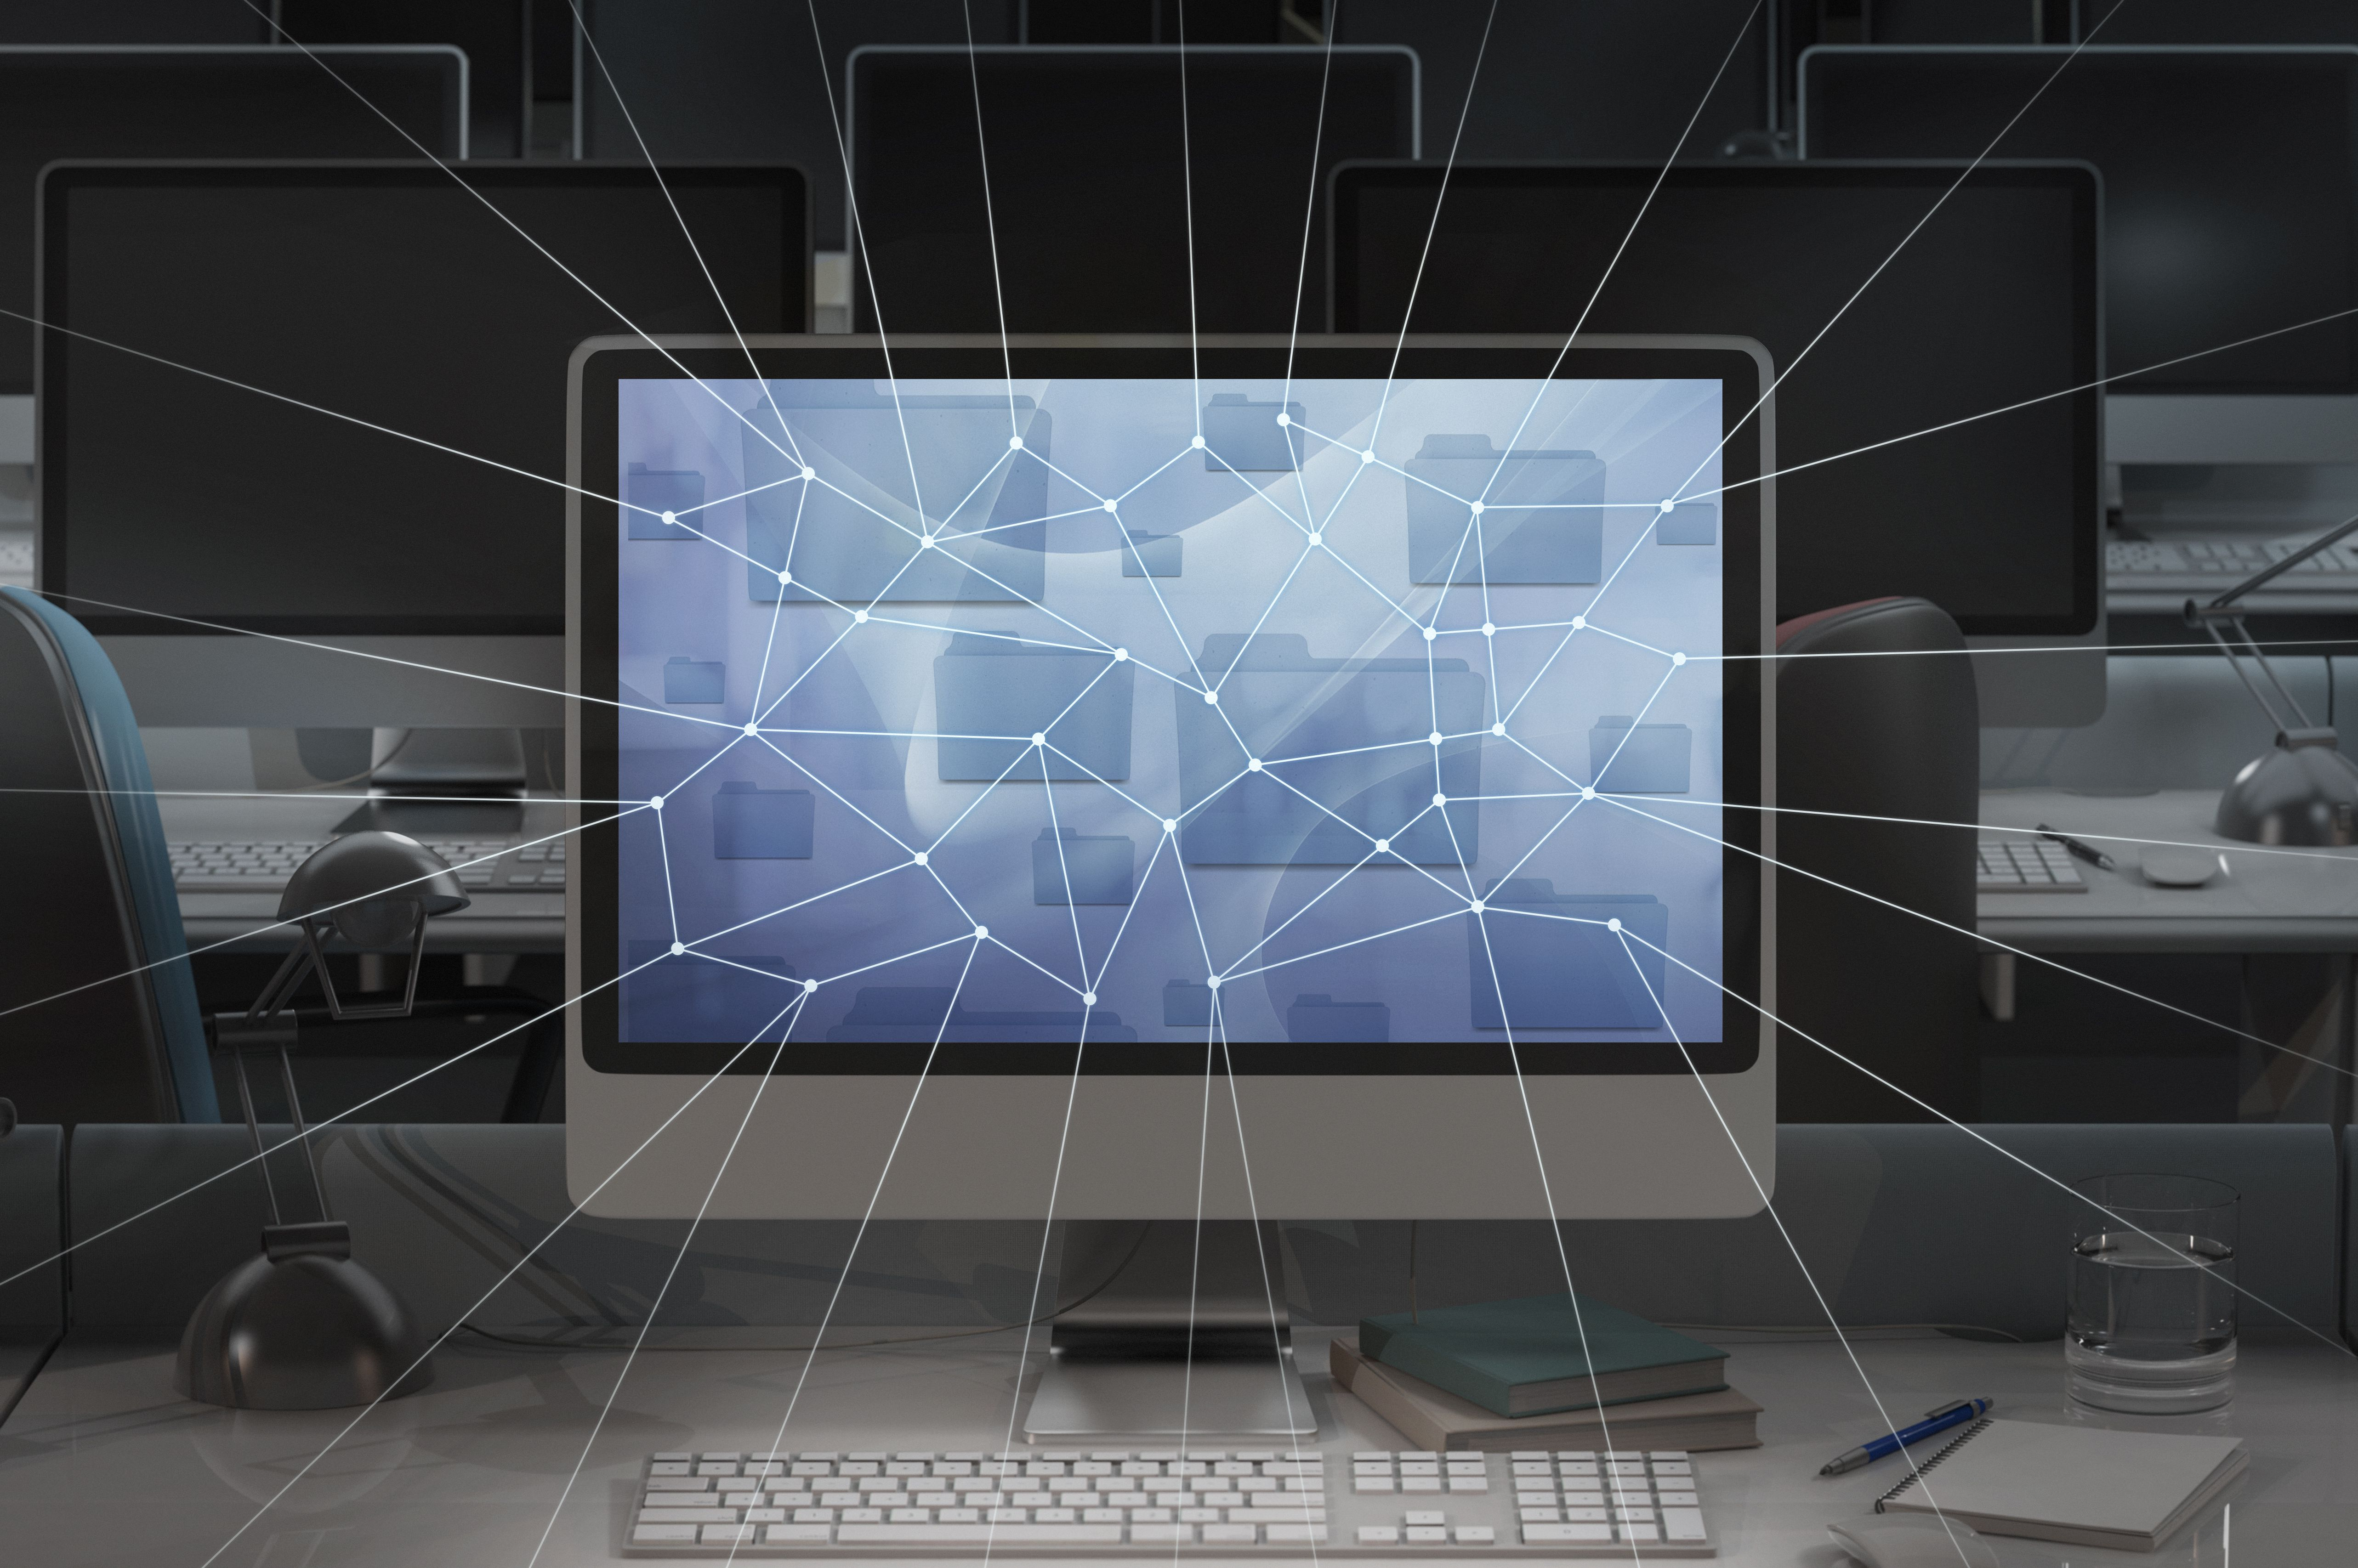 Picture of a puter in a dark office with network lines ing out of the monitor